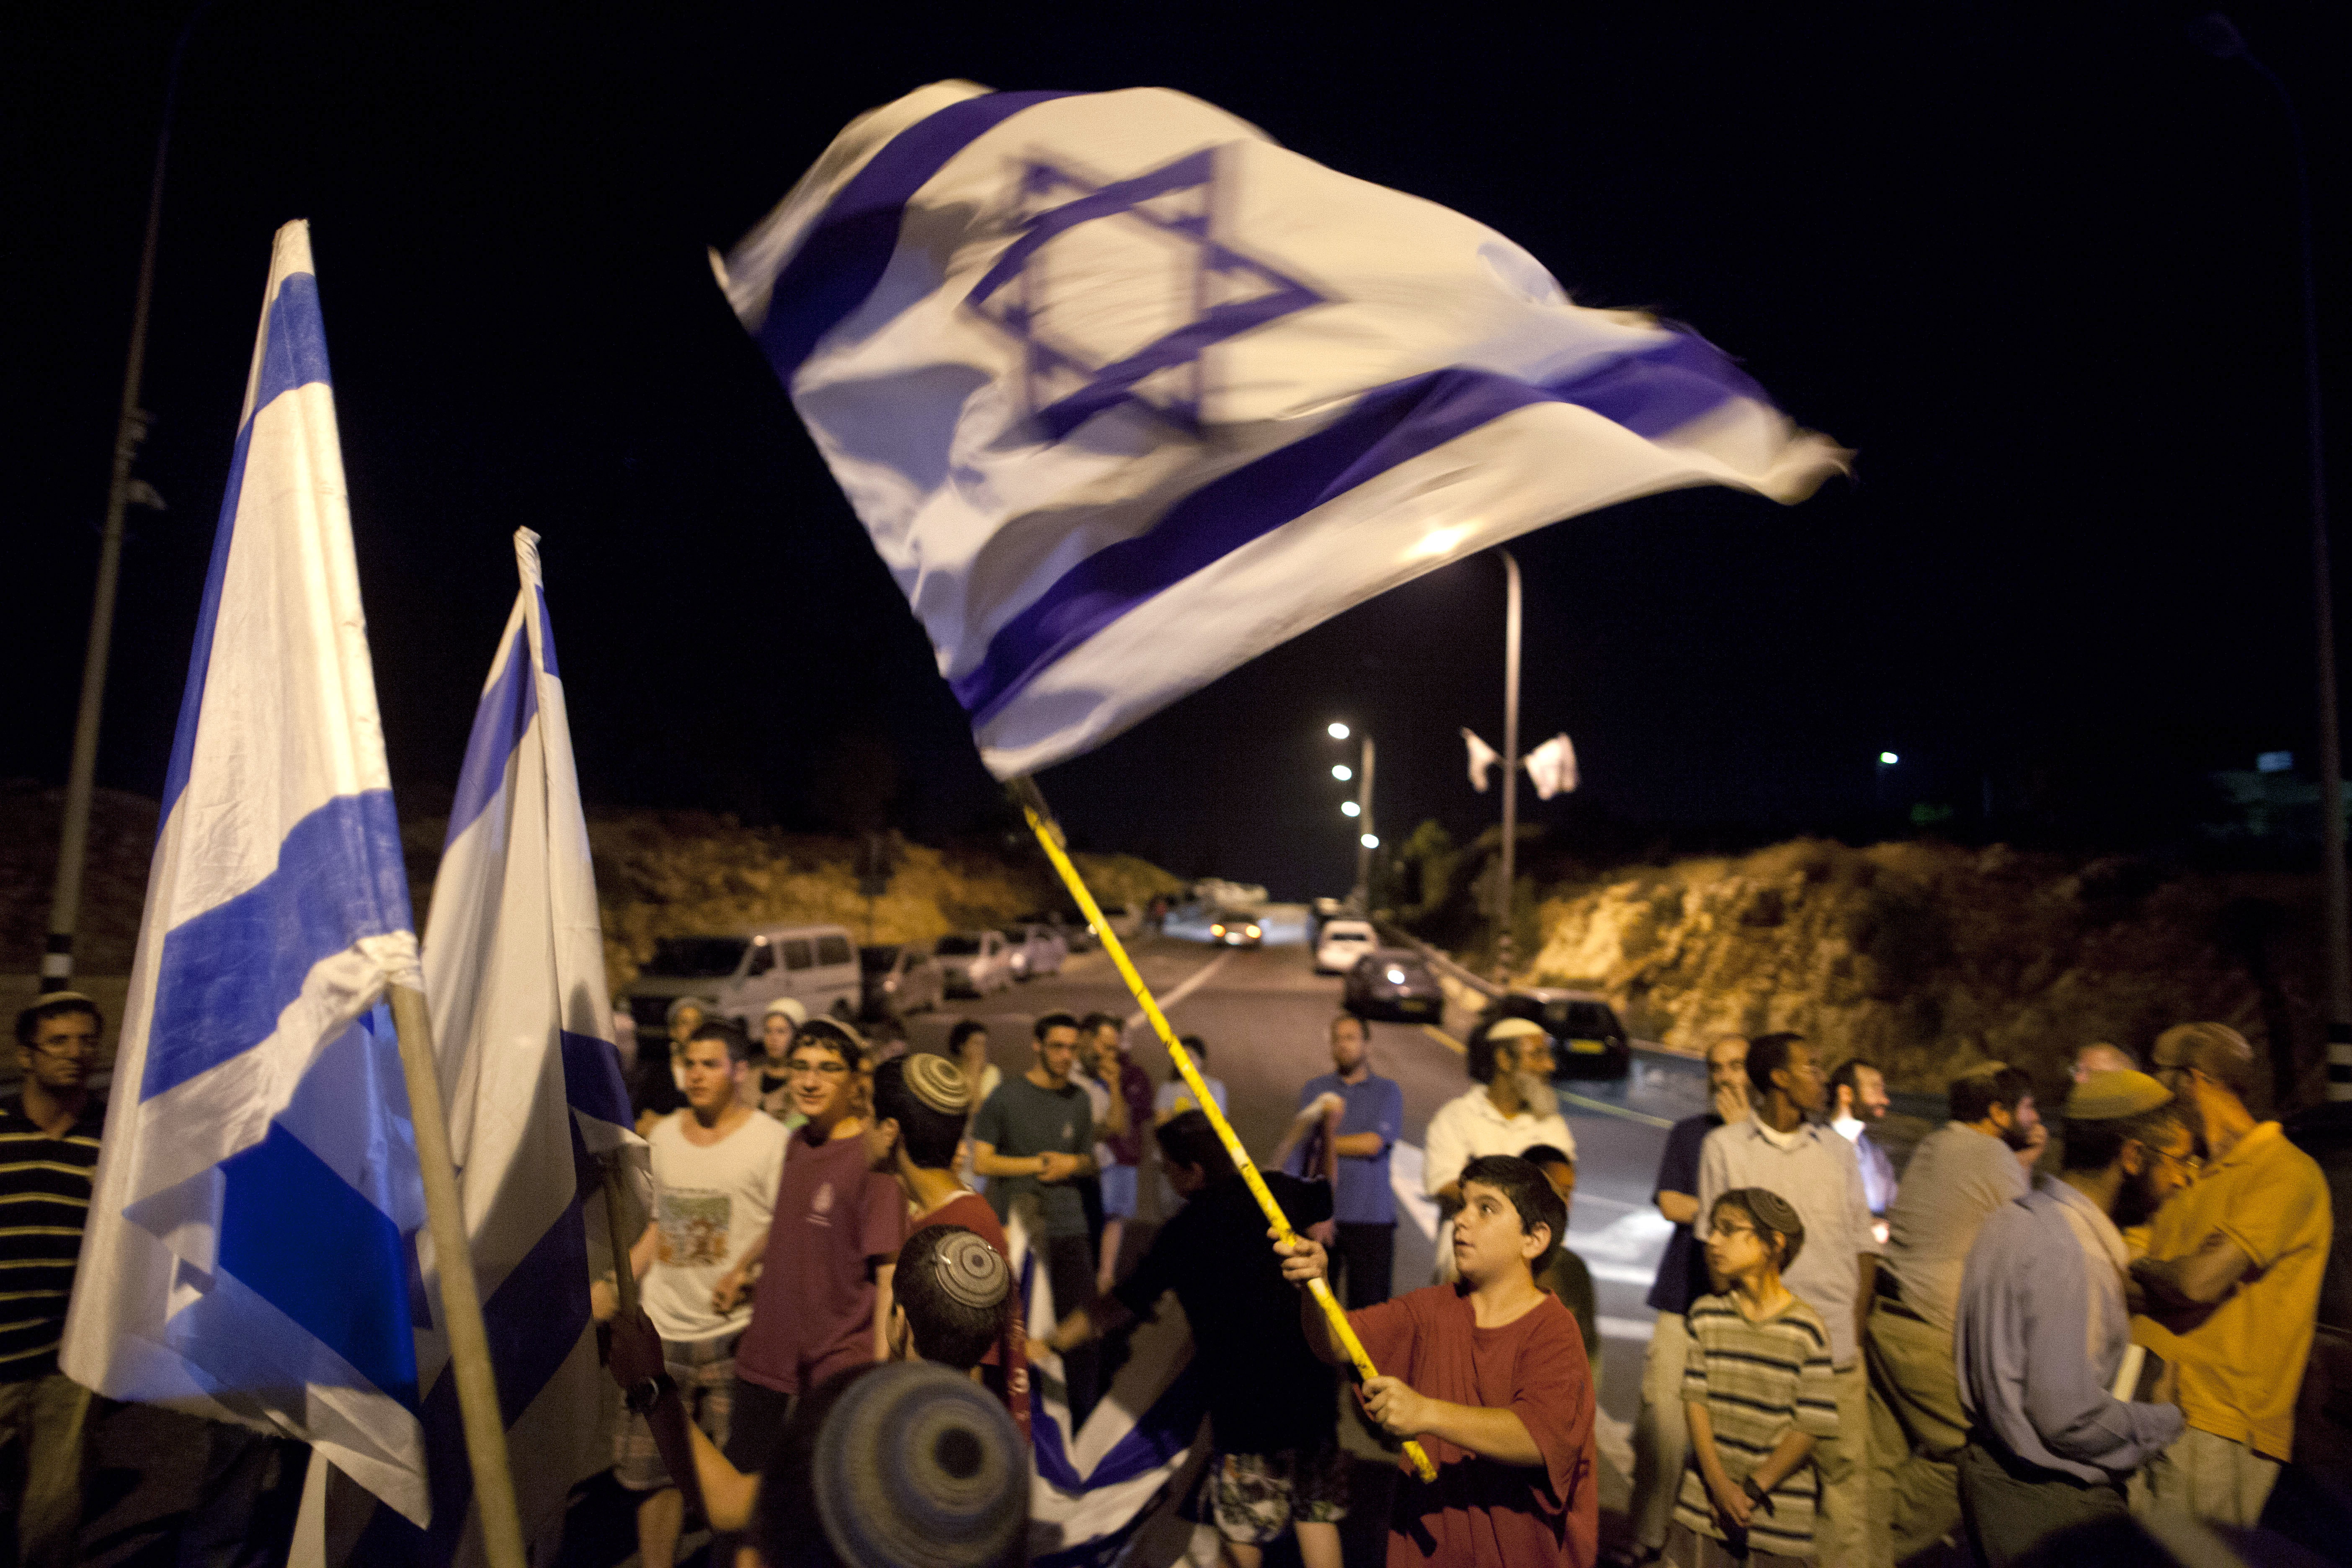 Israeli settlers hold flags on June 30, 2014, at the entrance to Halhoul, north of Hebron, West Bank